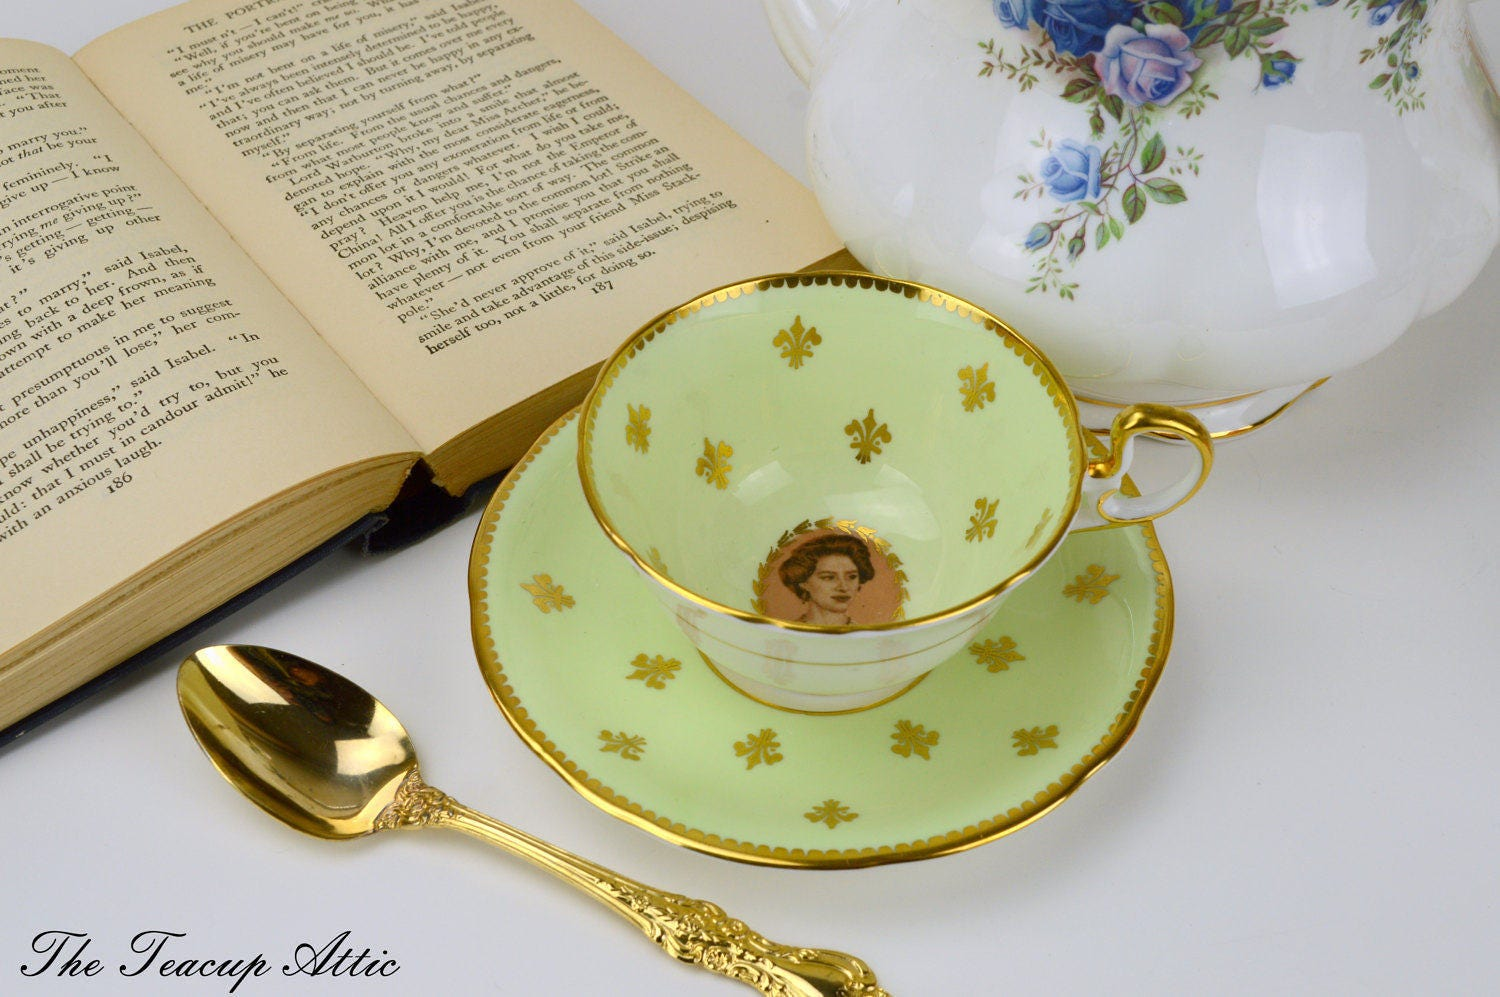 Aynsley Pale Yellow Princess Margaret Commemorative Teacup And Saucer Set, English Bone China Tea Cup, Royal Family, ca. 1958